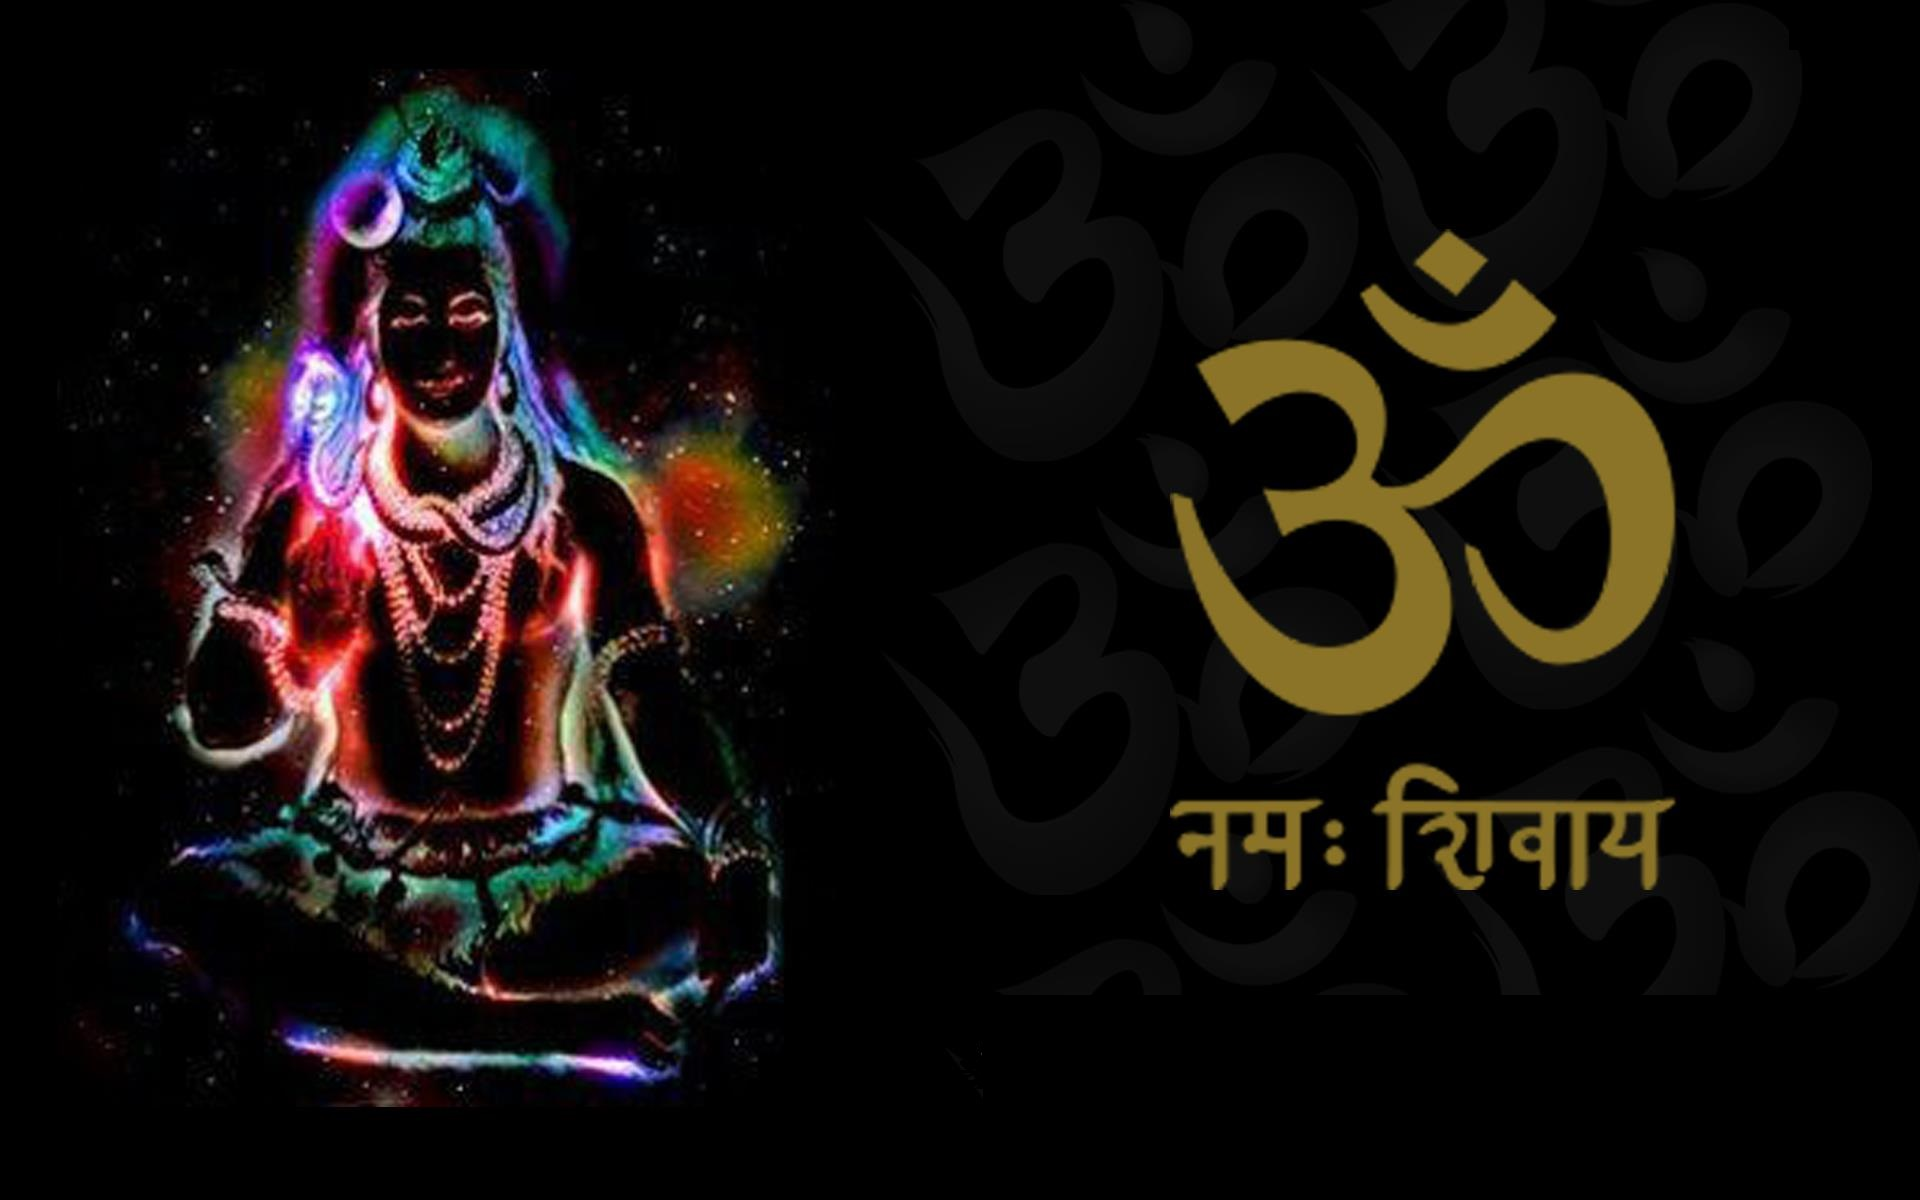 3d Ganesh Wallpapers Free Download For Pc Shiva Puja Vidhi Detailed Steps For Shiva Puja